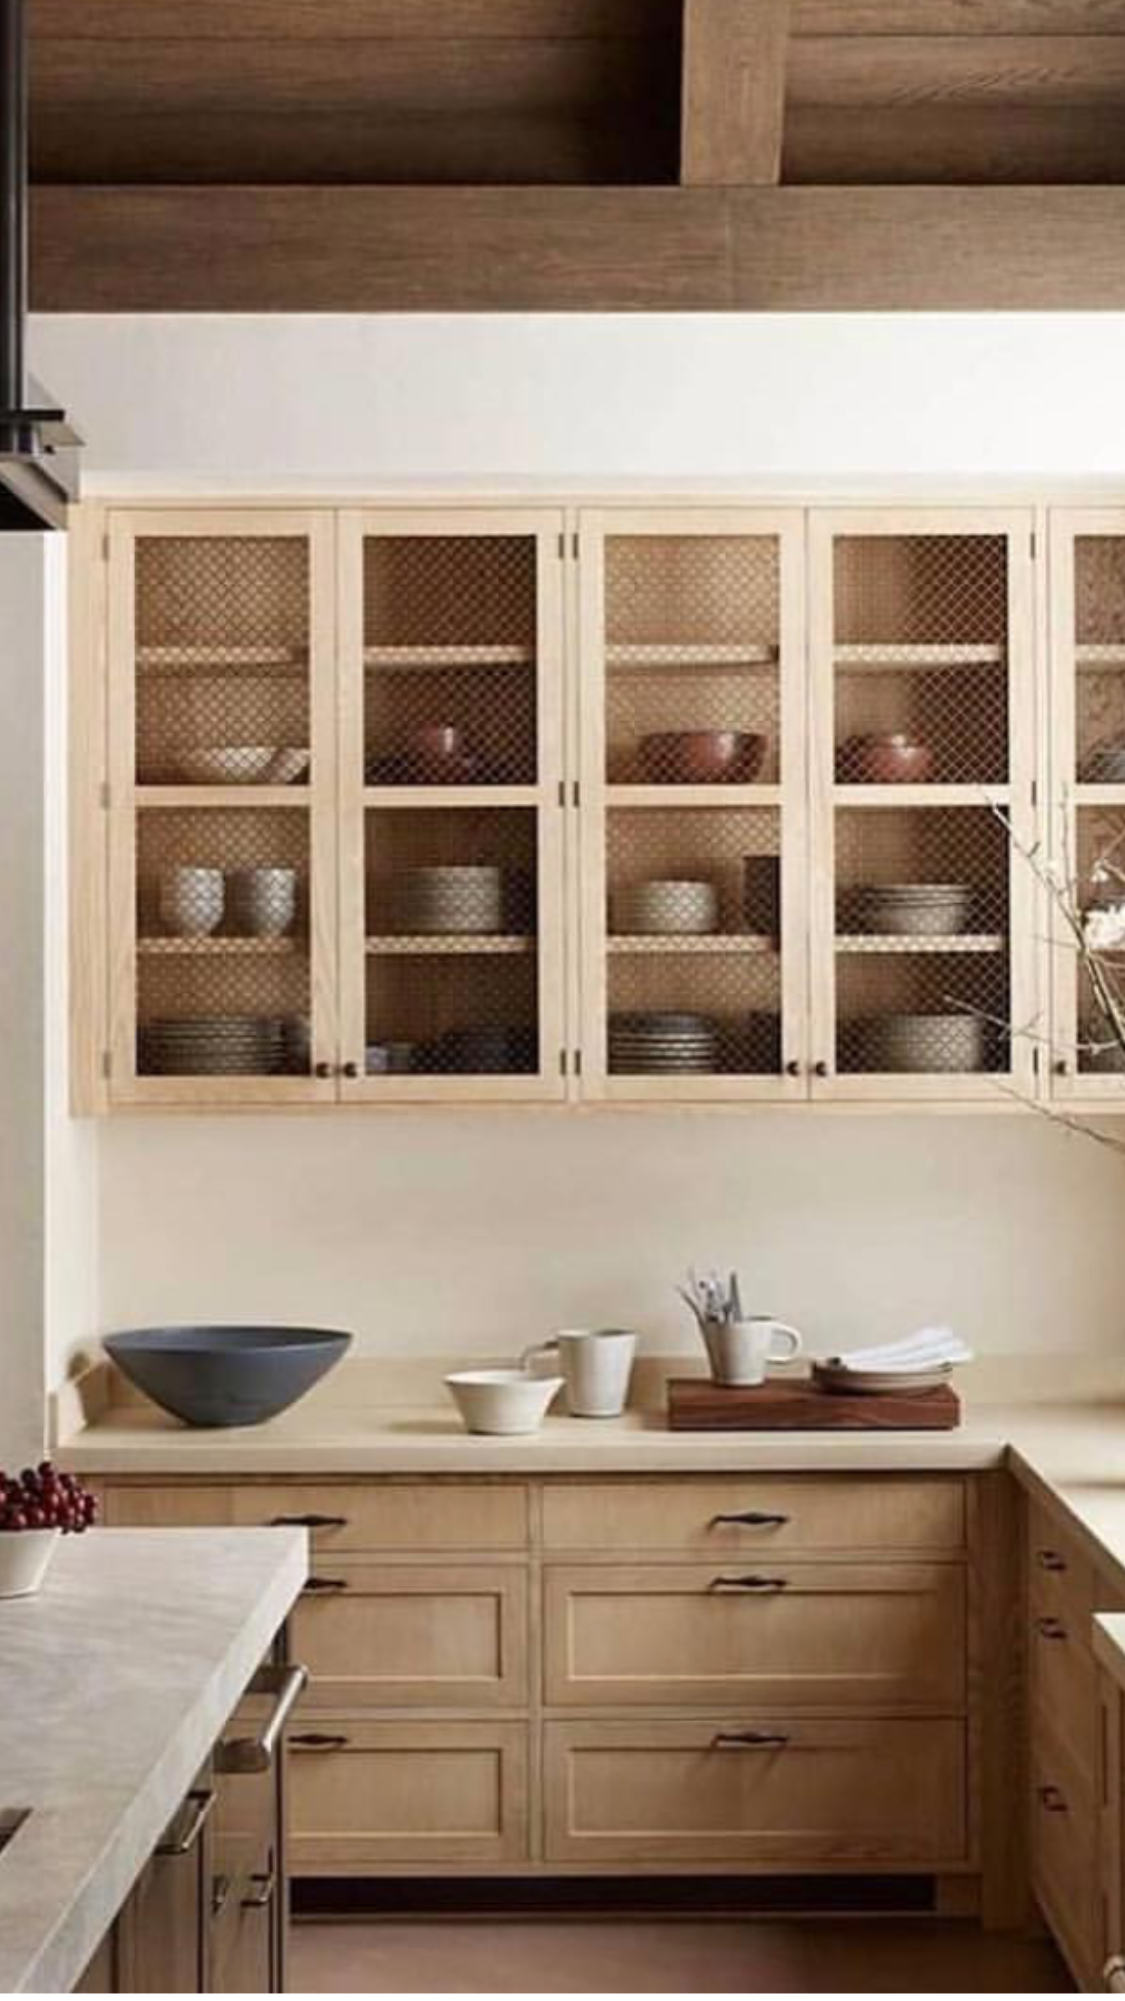 If Cabinets Had Gl Keep Shelves Cleaner Very Warm Natural And Minimal At The Same Time